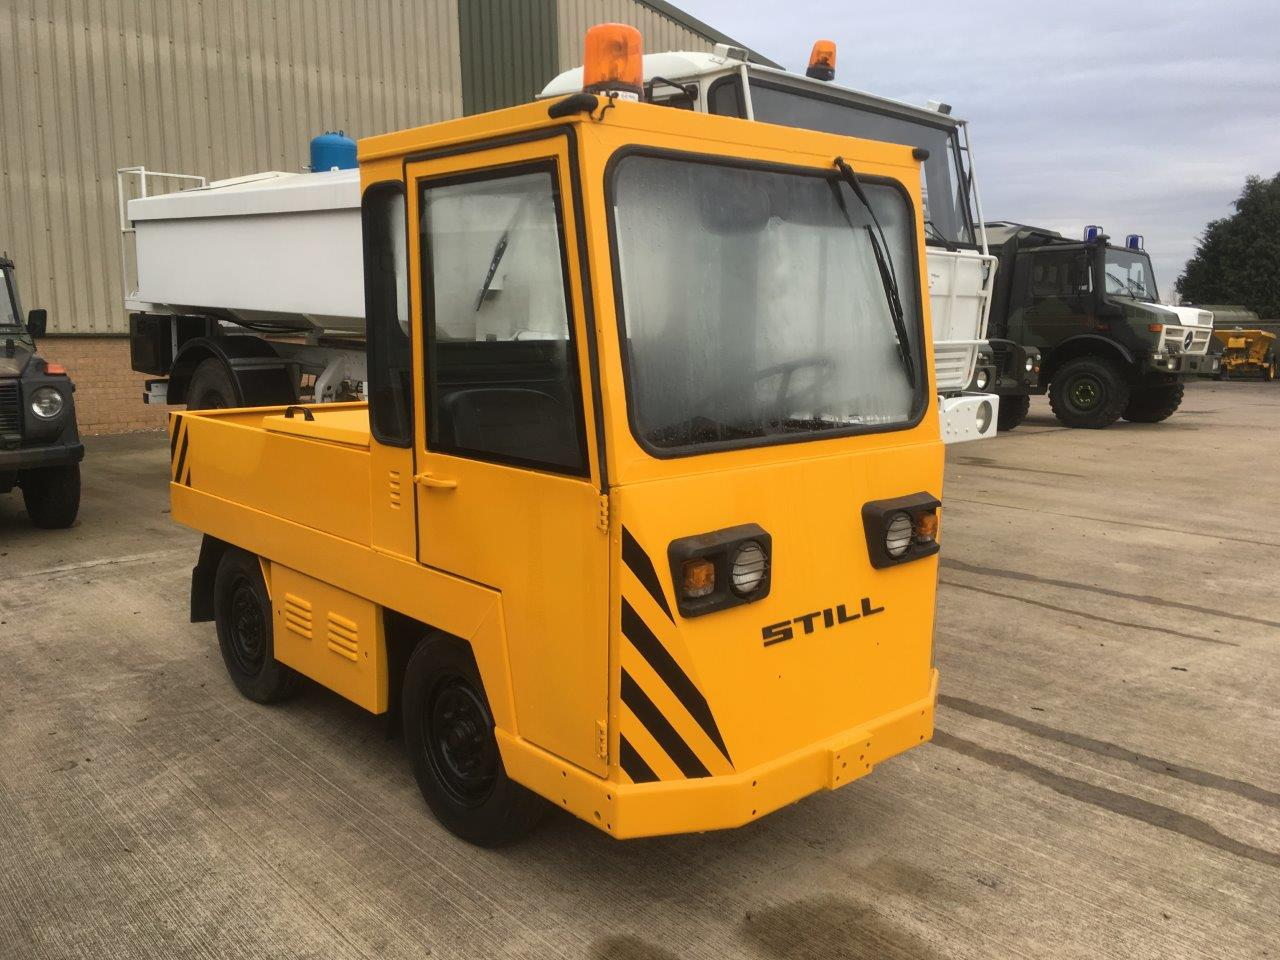 Still R07 Aircaft Tug for sale